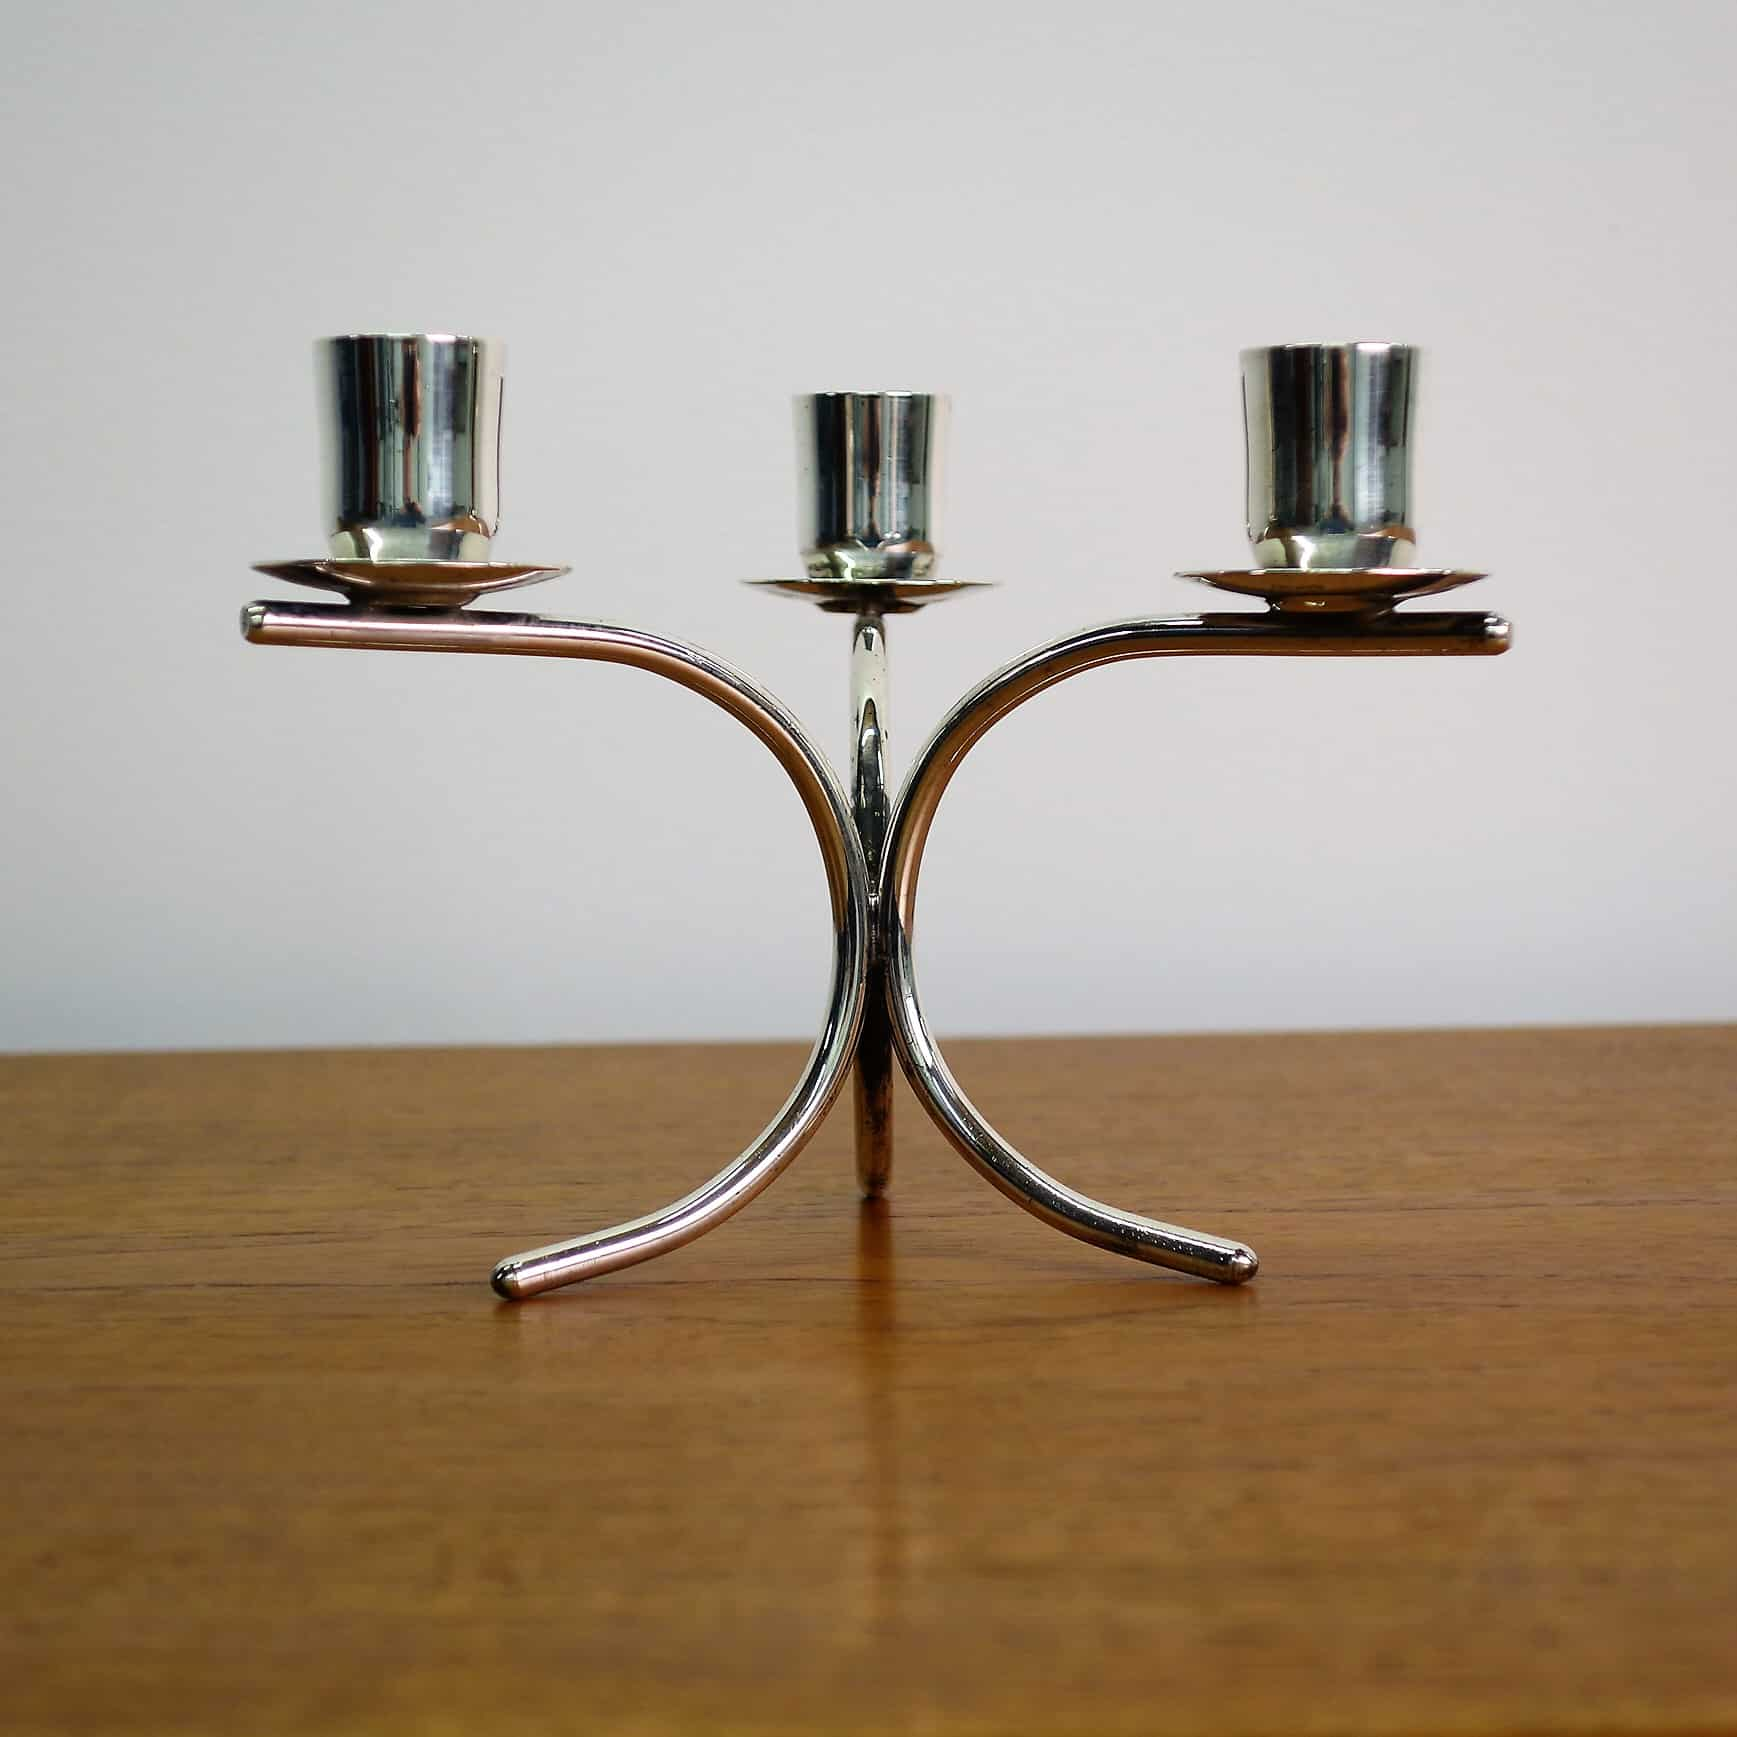 60s silver plate candlestick by G.de Martino